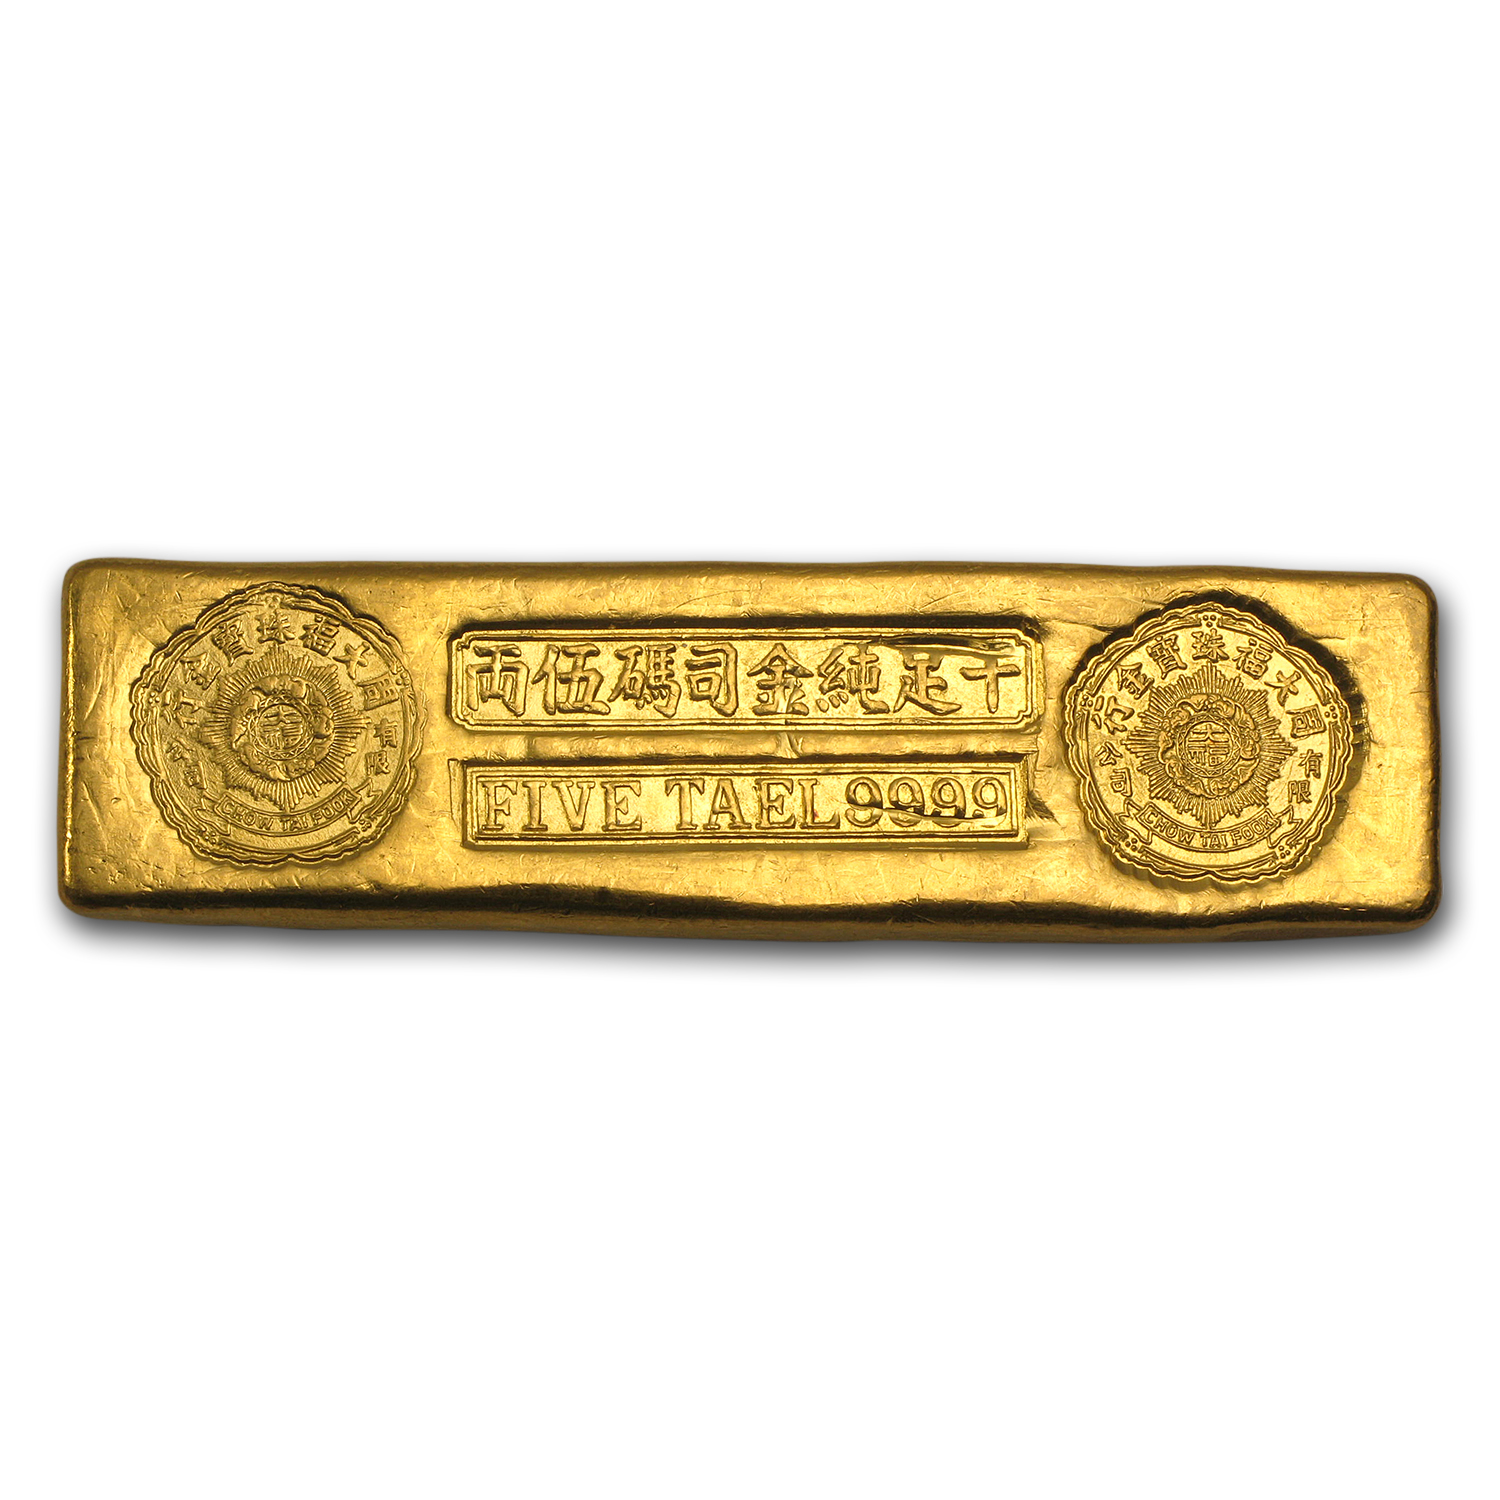 5 Tael Gold Bar - Chinese Biscuit (AGW 6.01)